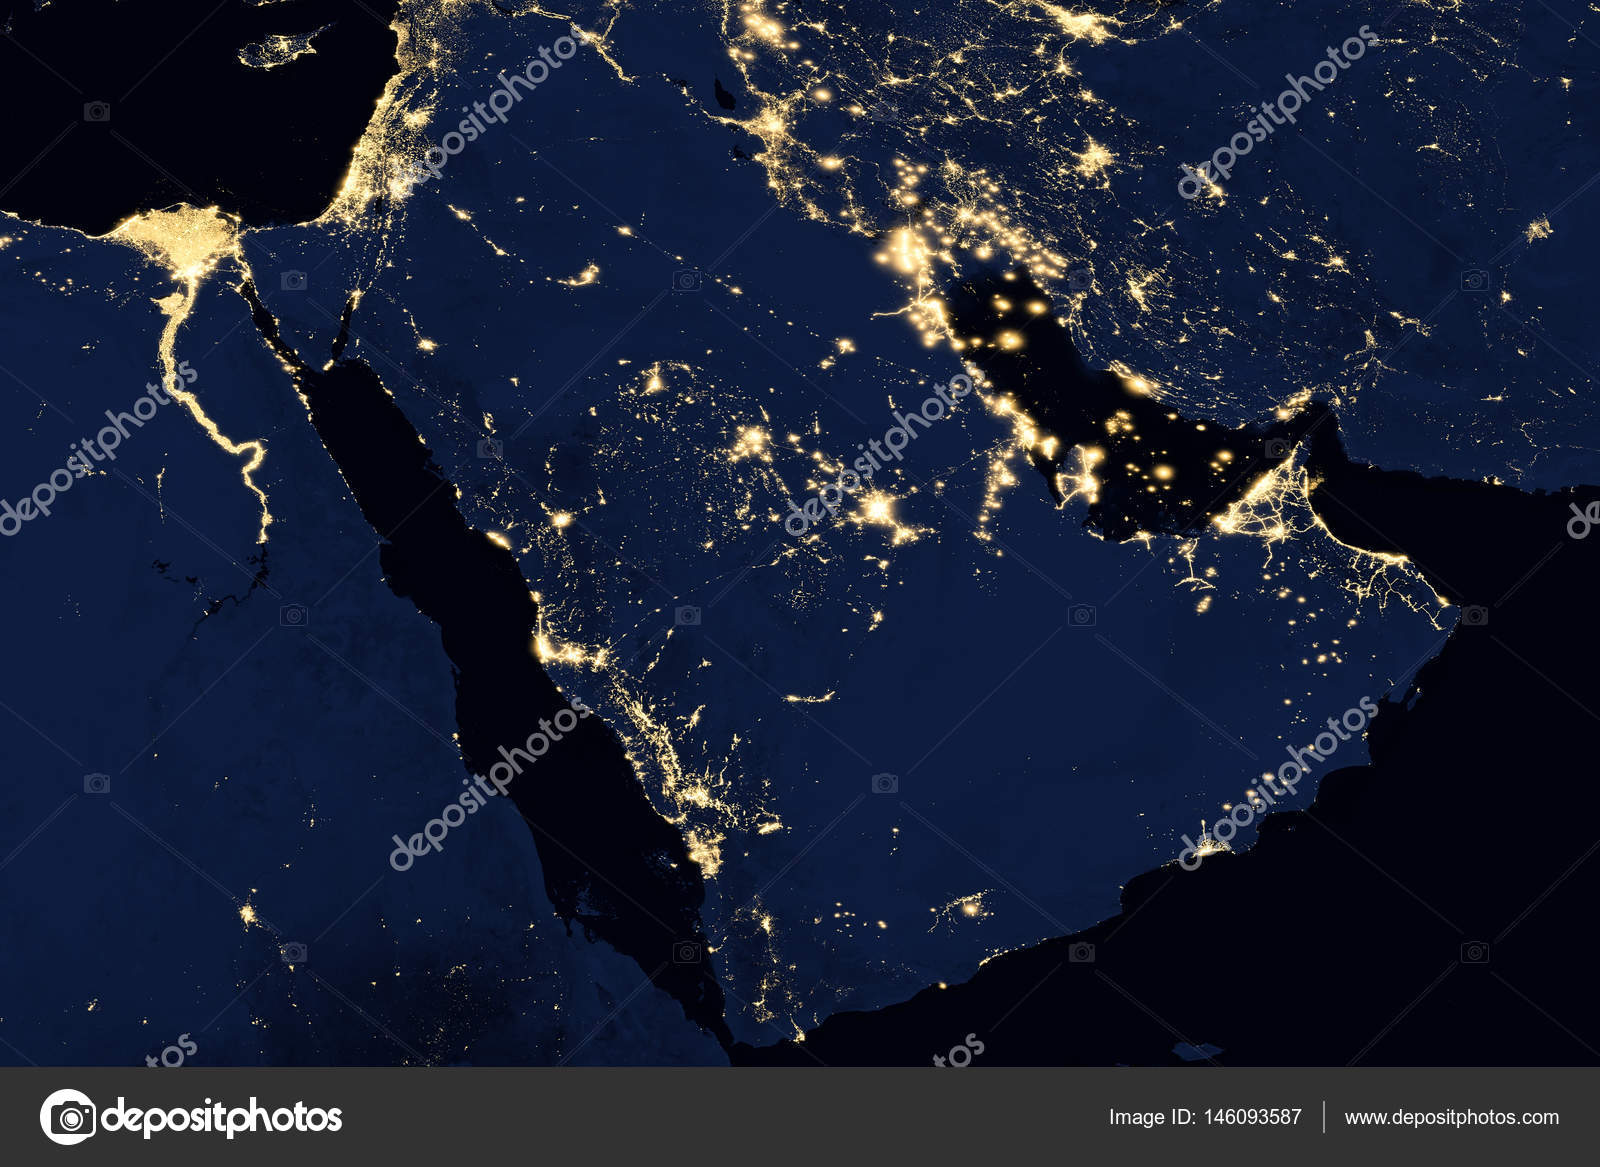 City lights on world map arabian peninsula stock photo nasa city lights on world map arabian peninsula elements of this image are furnished by nasa photo by nasaage sciox Gallery